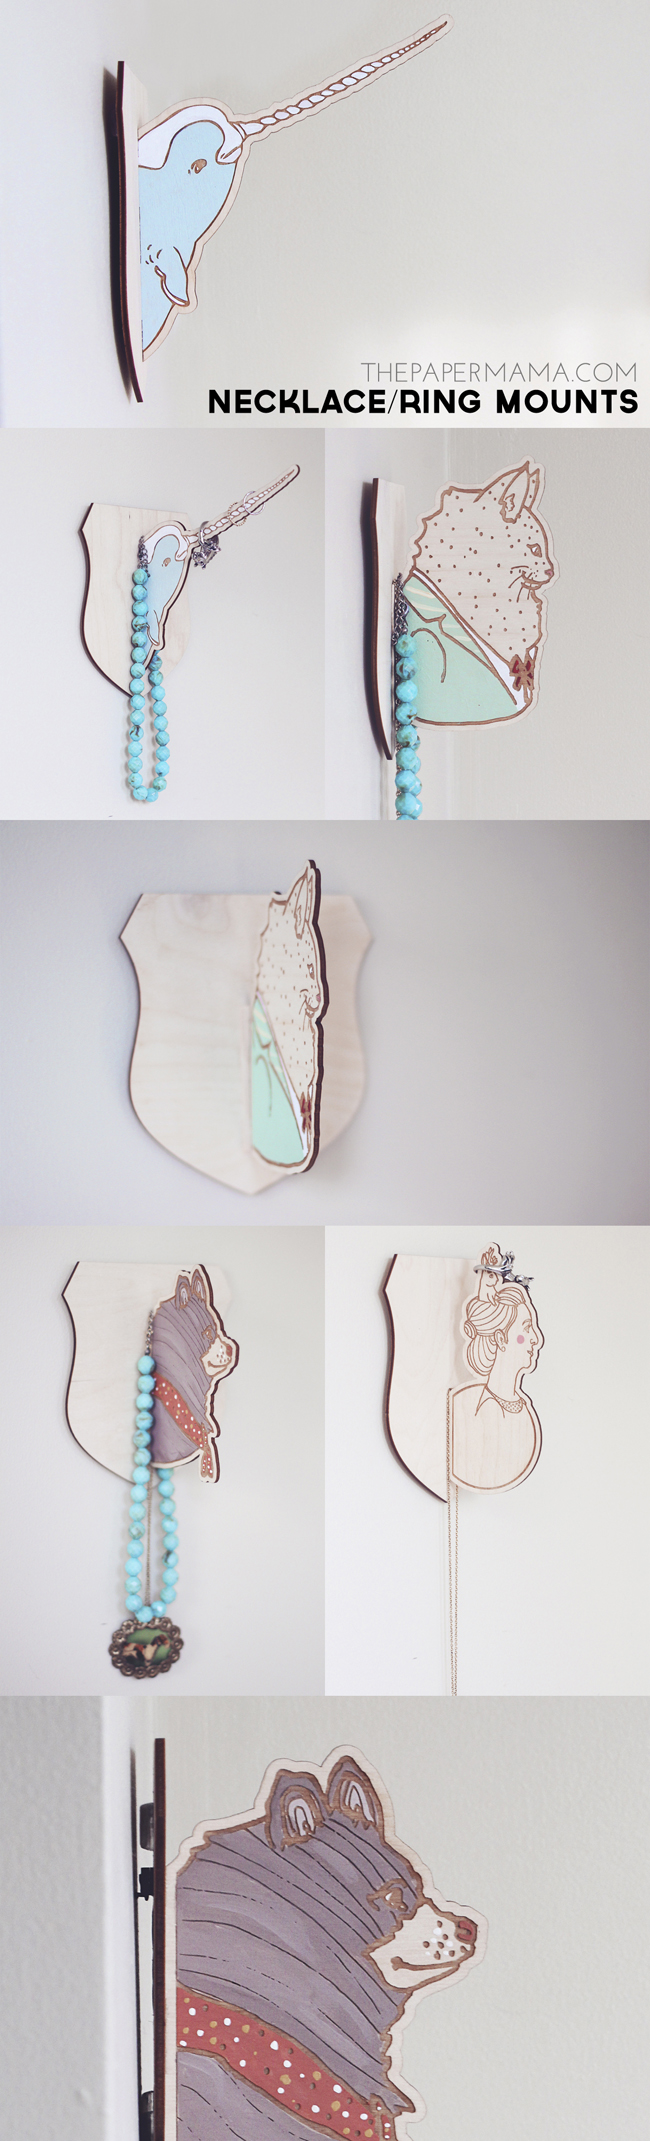 Necklace/Ring Holder Wall Mount // thepapermama.com